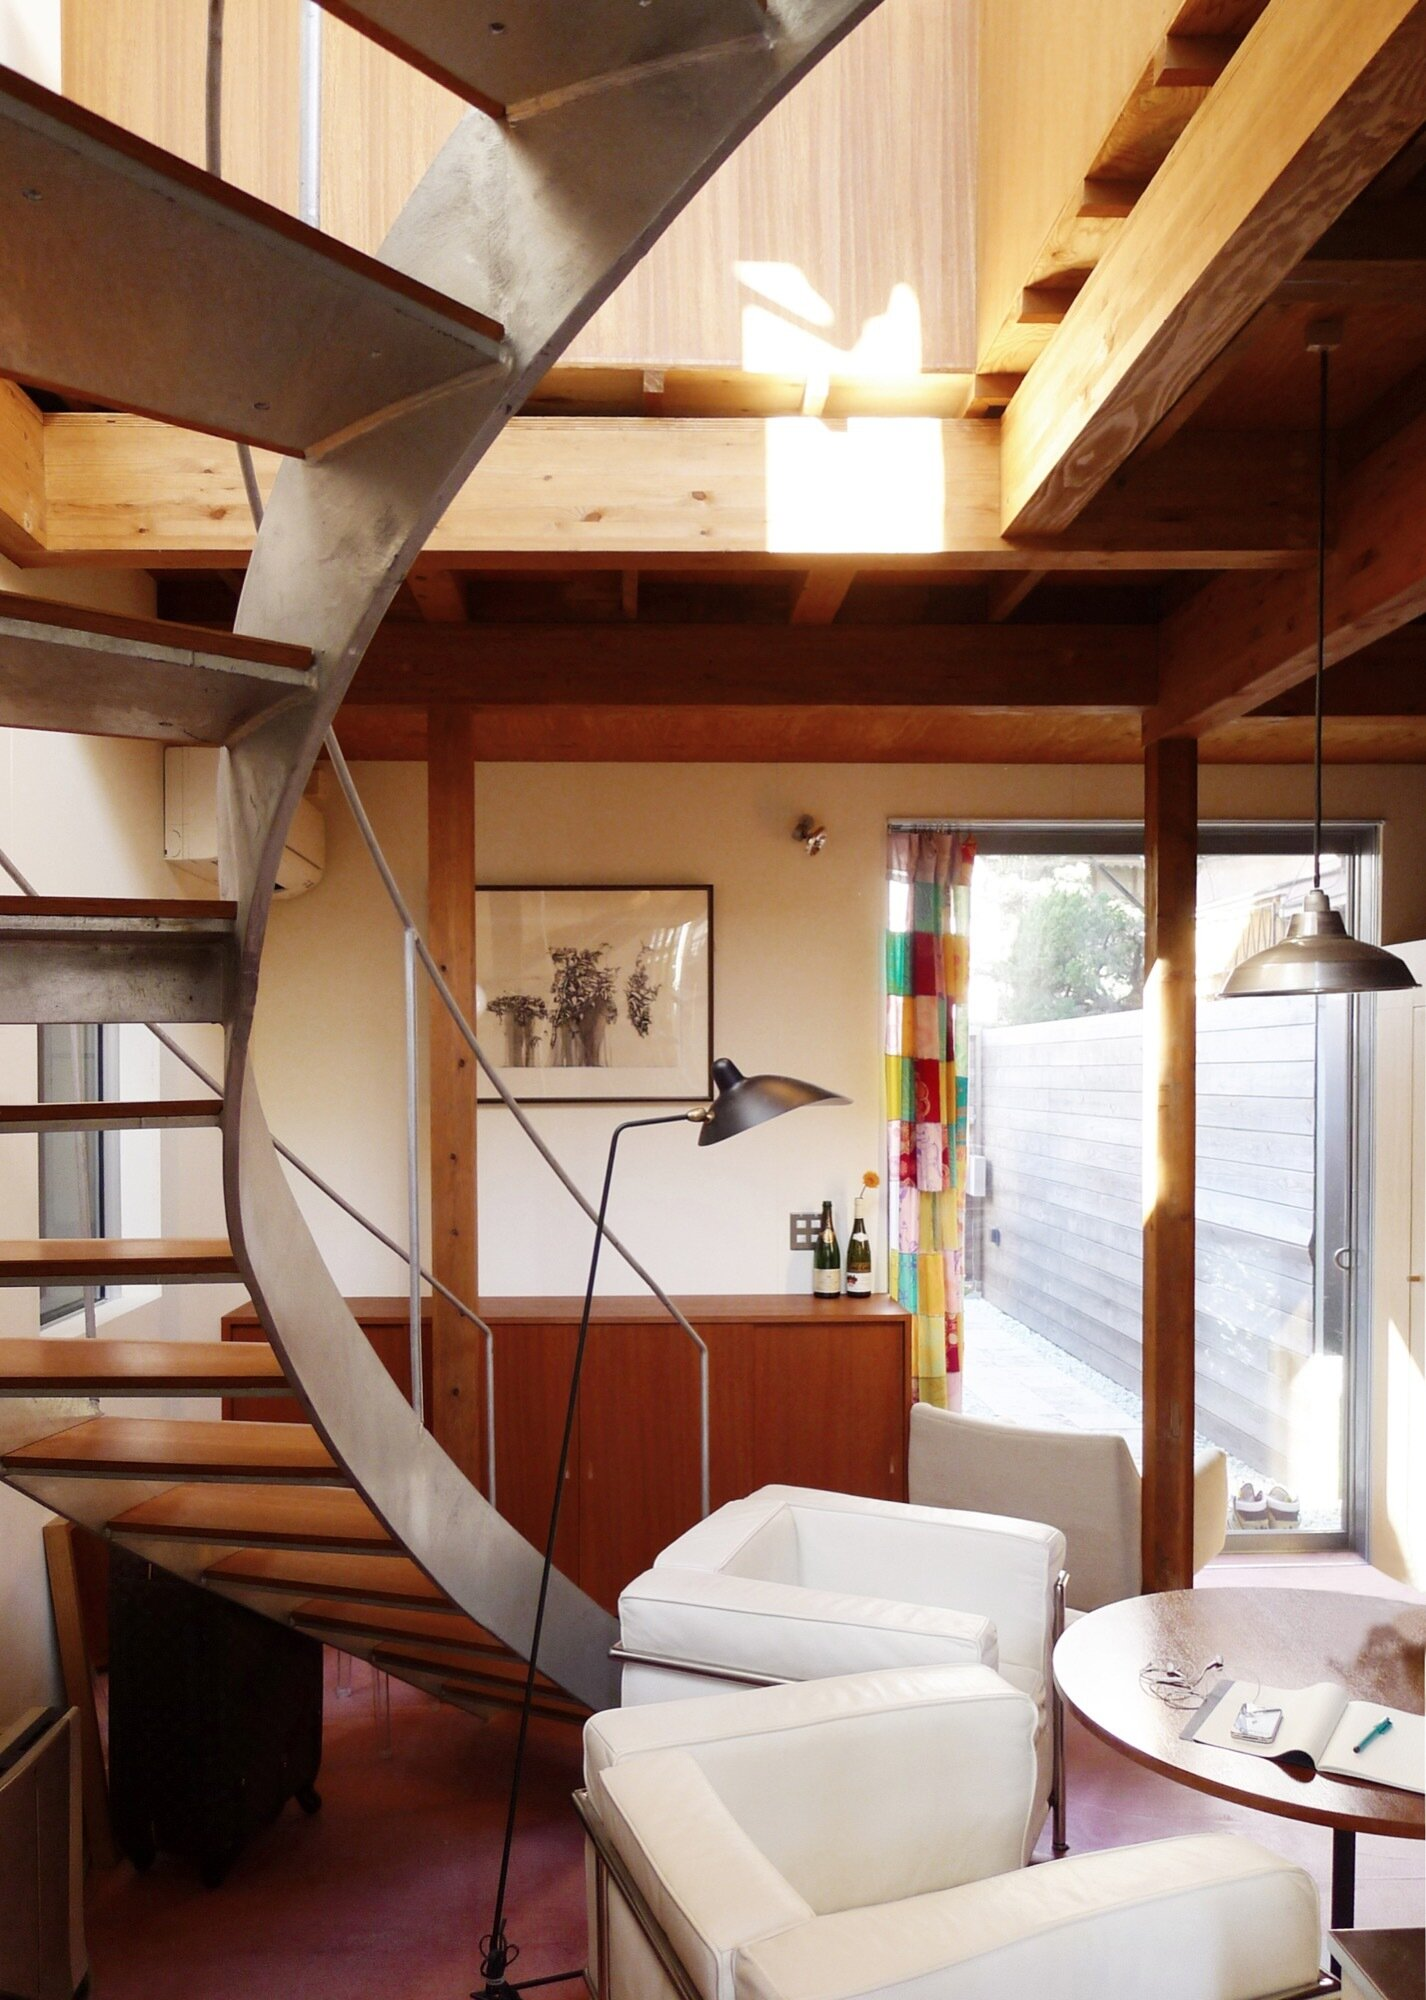 CASA O - Takahashi Ippei Office - Tokyo Japan - Living Room - Humble Homes